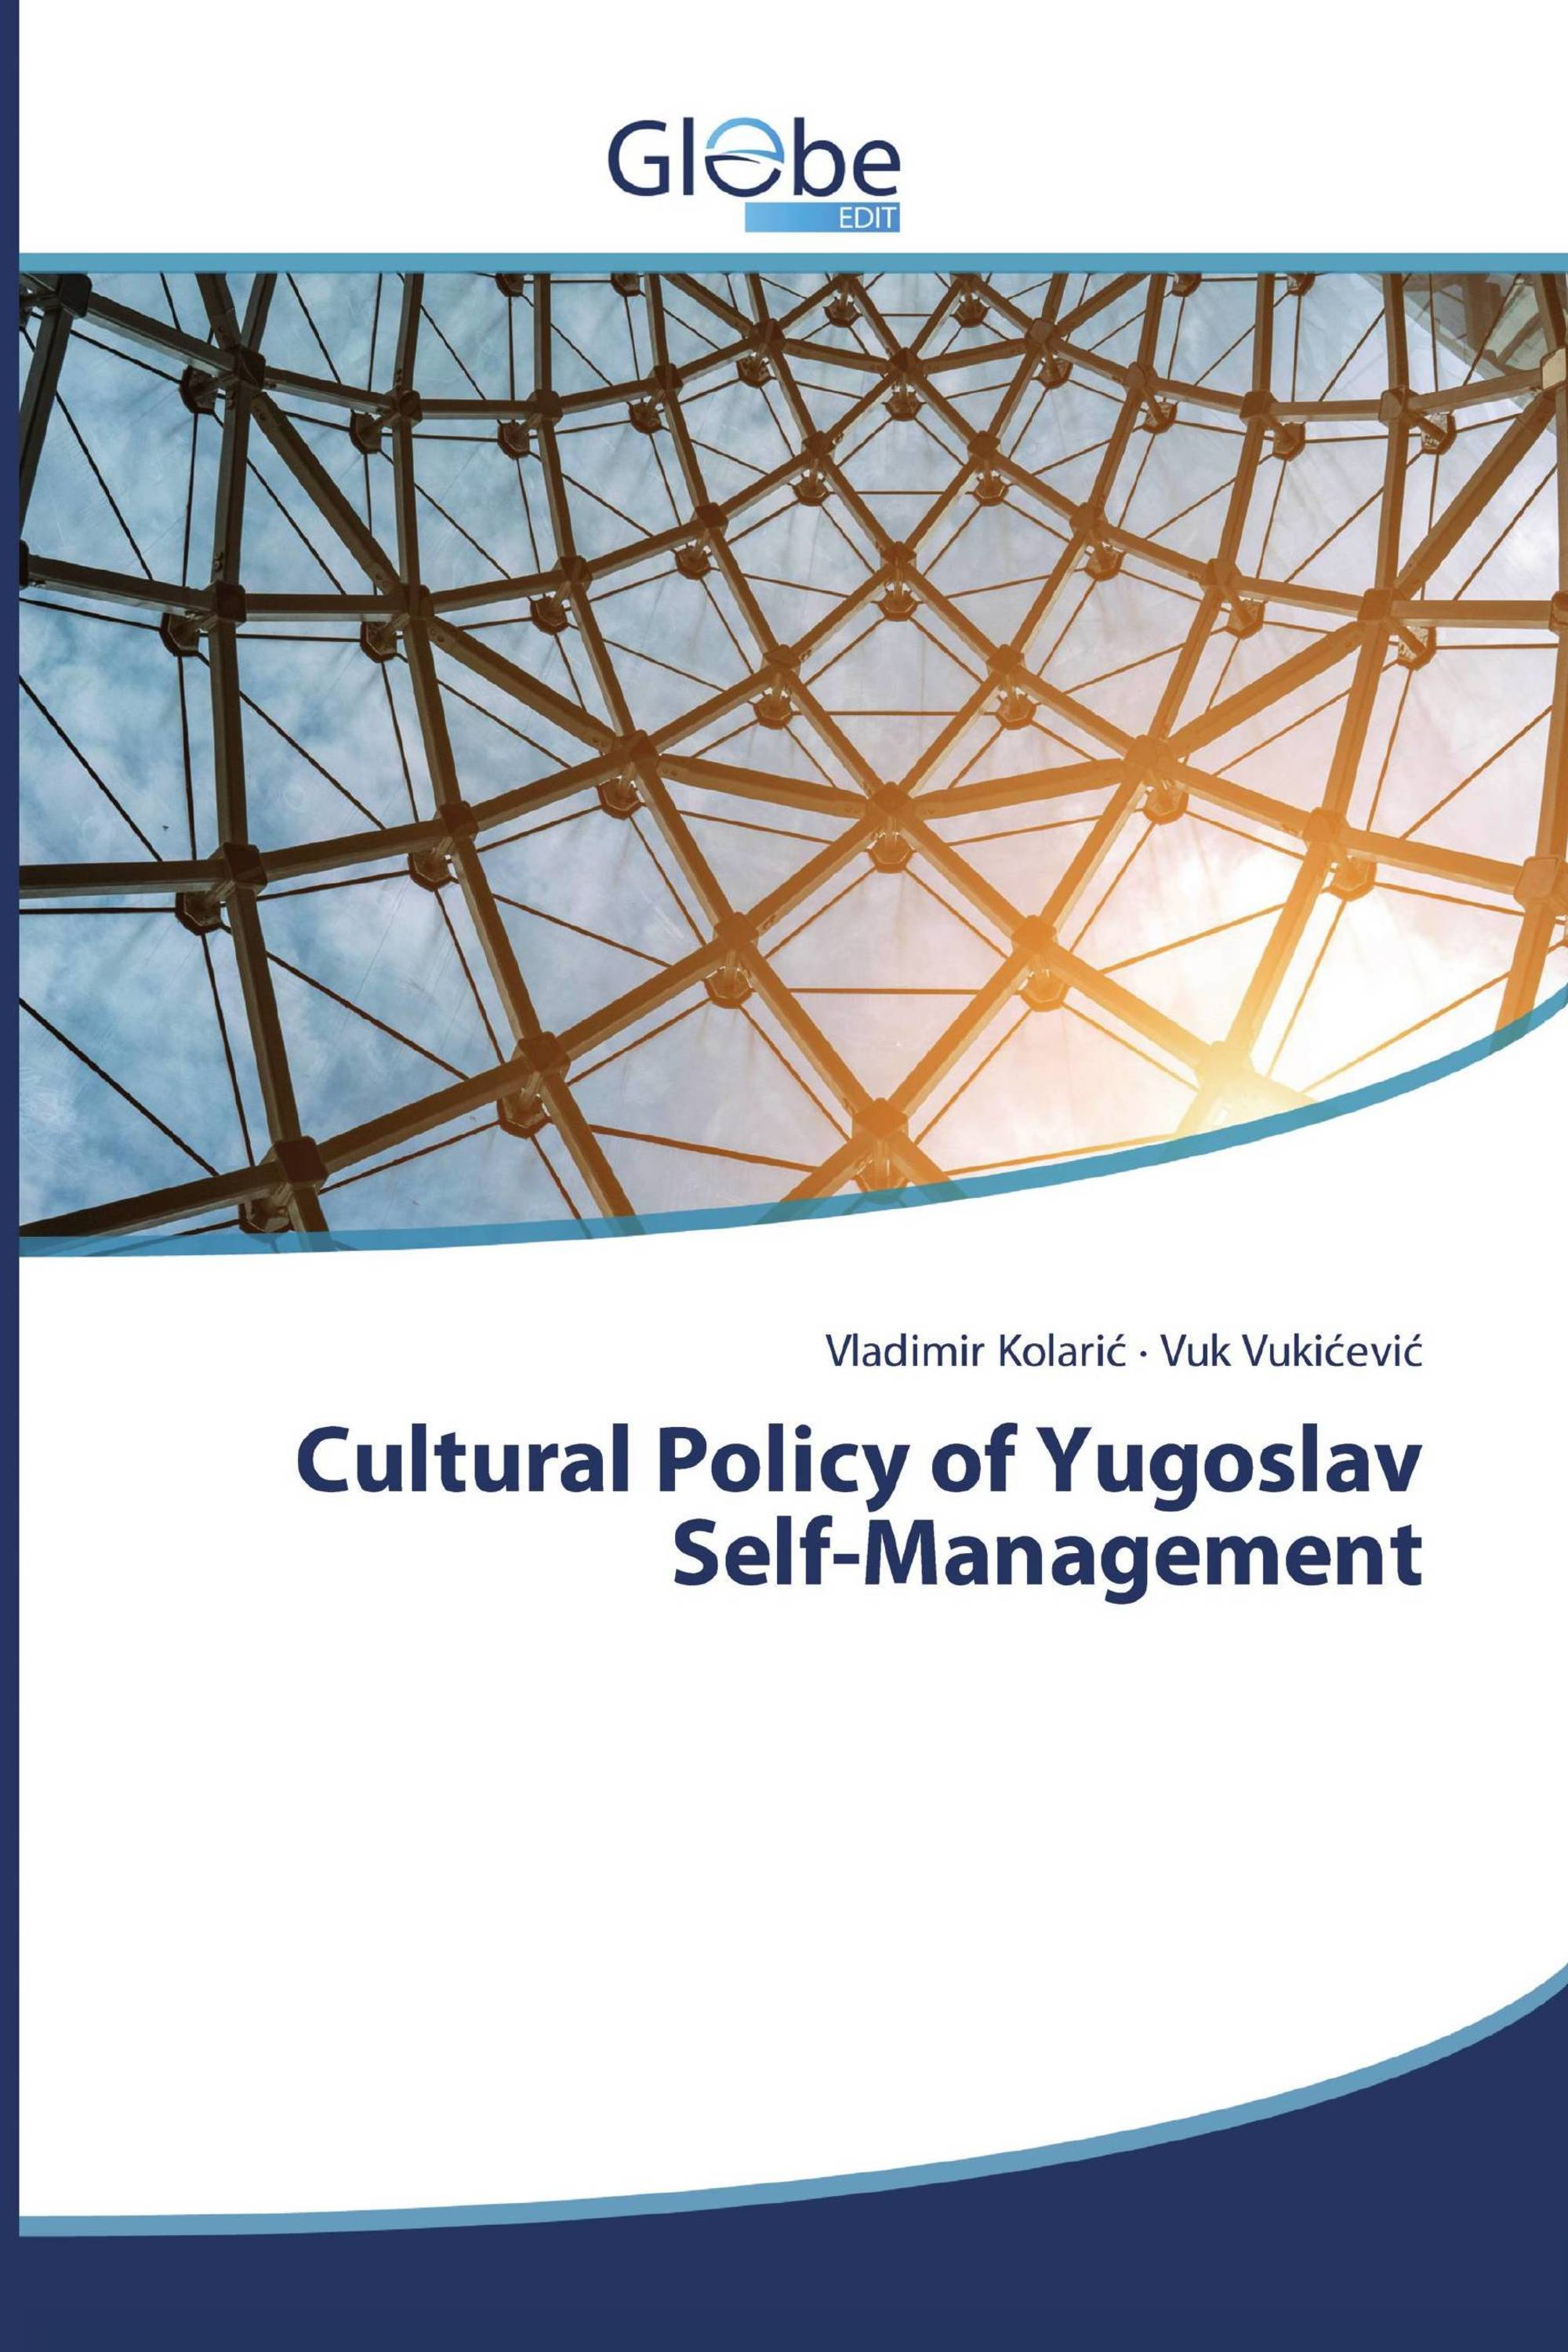 Cultural Policy of Yugoslav Self-Management